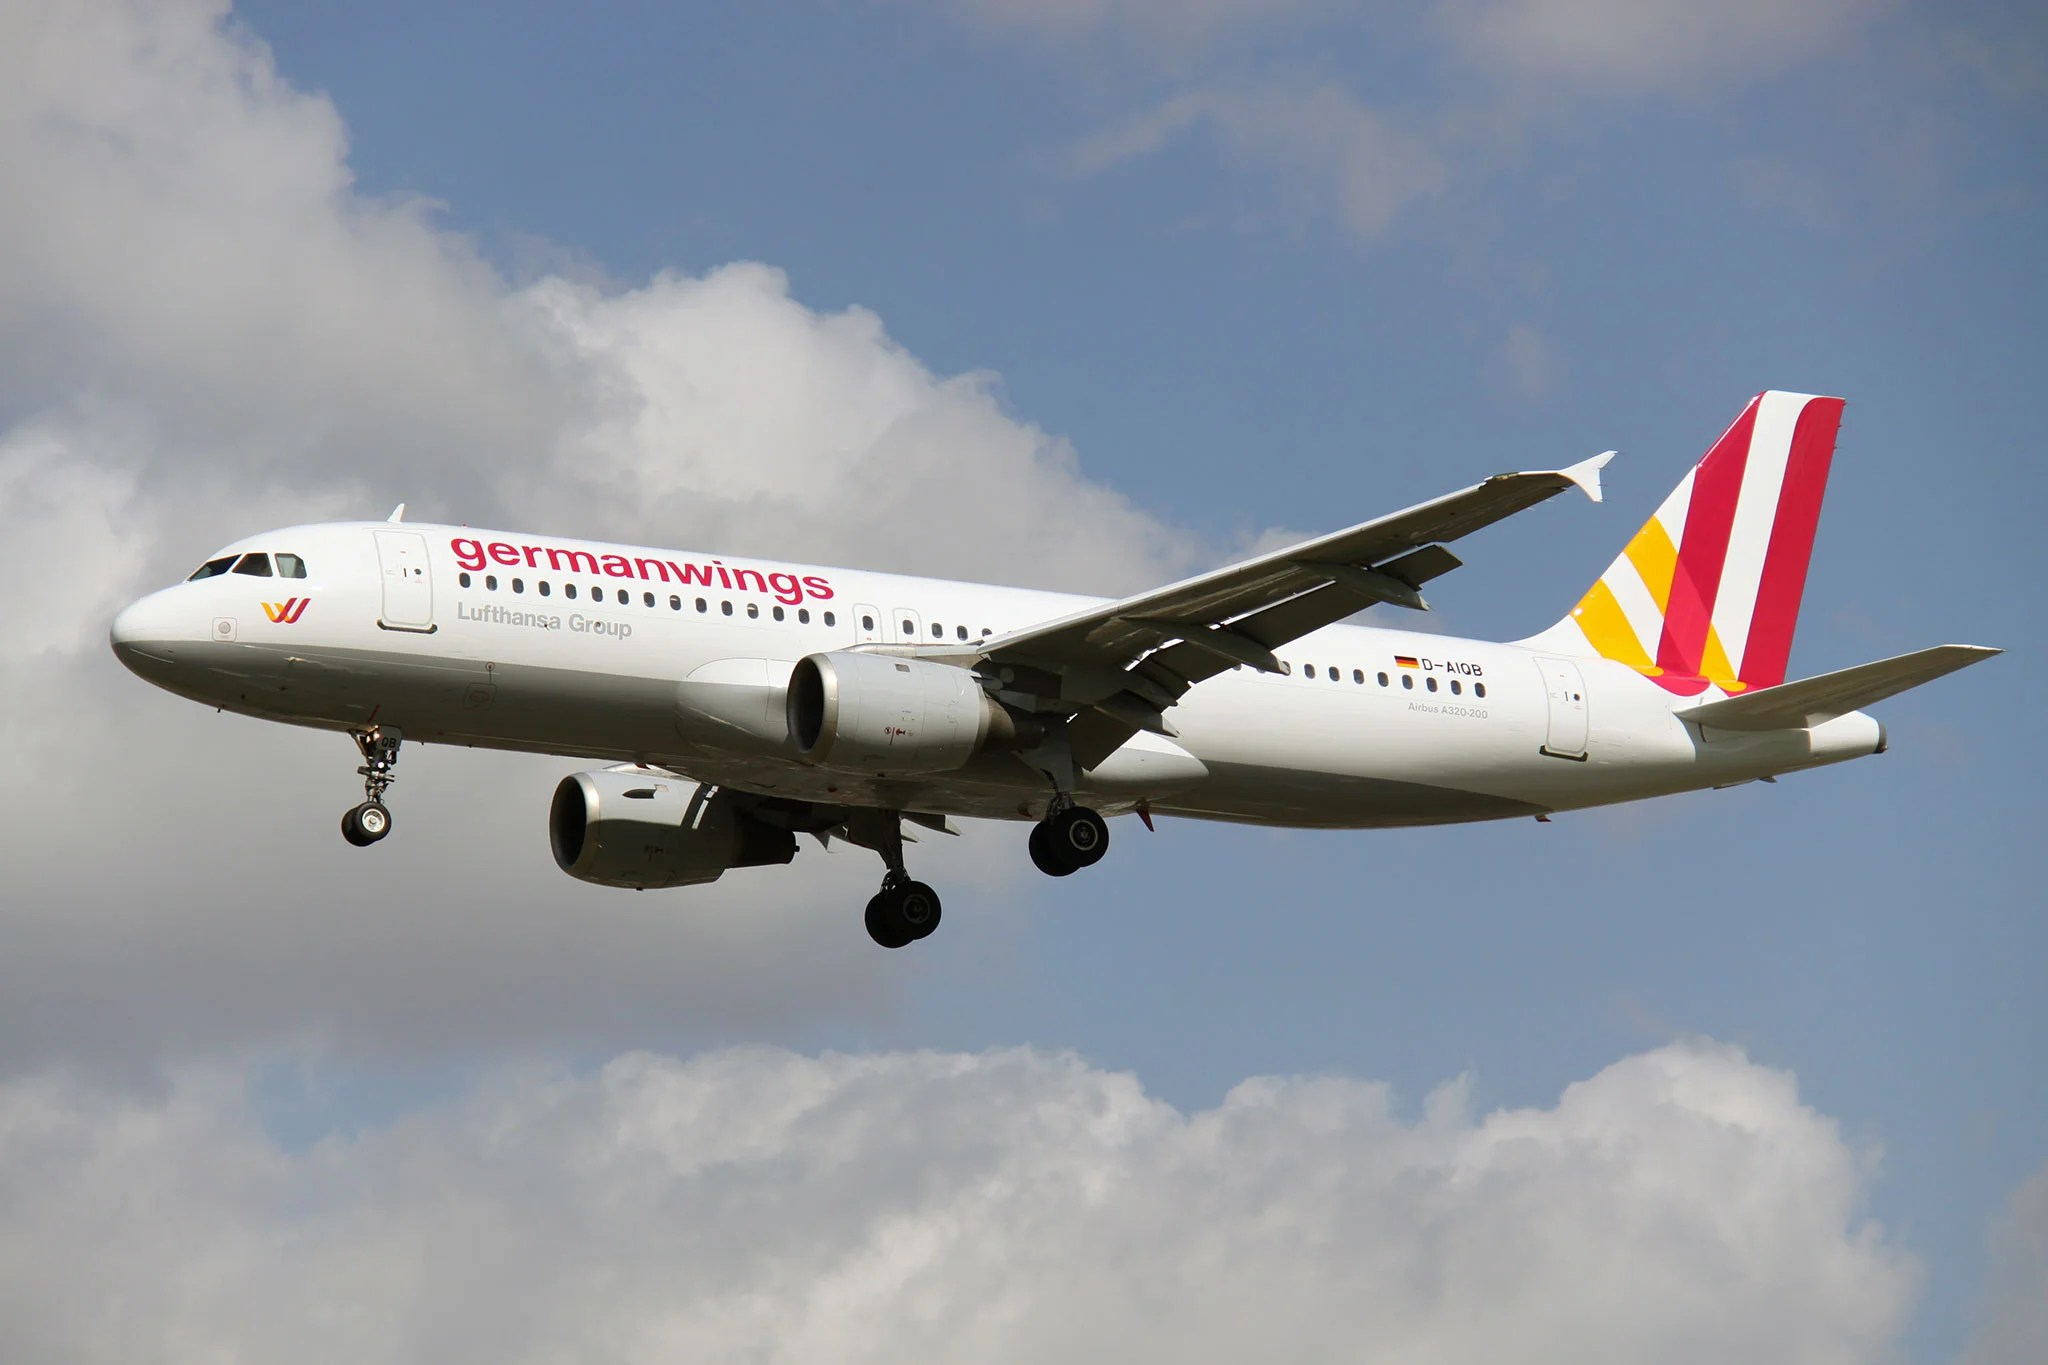 Airbus Iphone Wallpaper Germanwings Tweets News Of Airbus A320 Crash In French